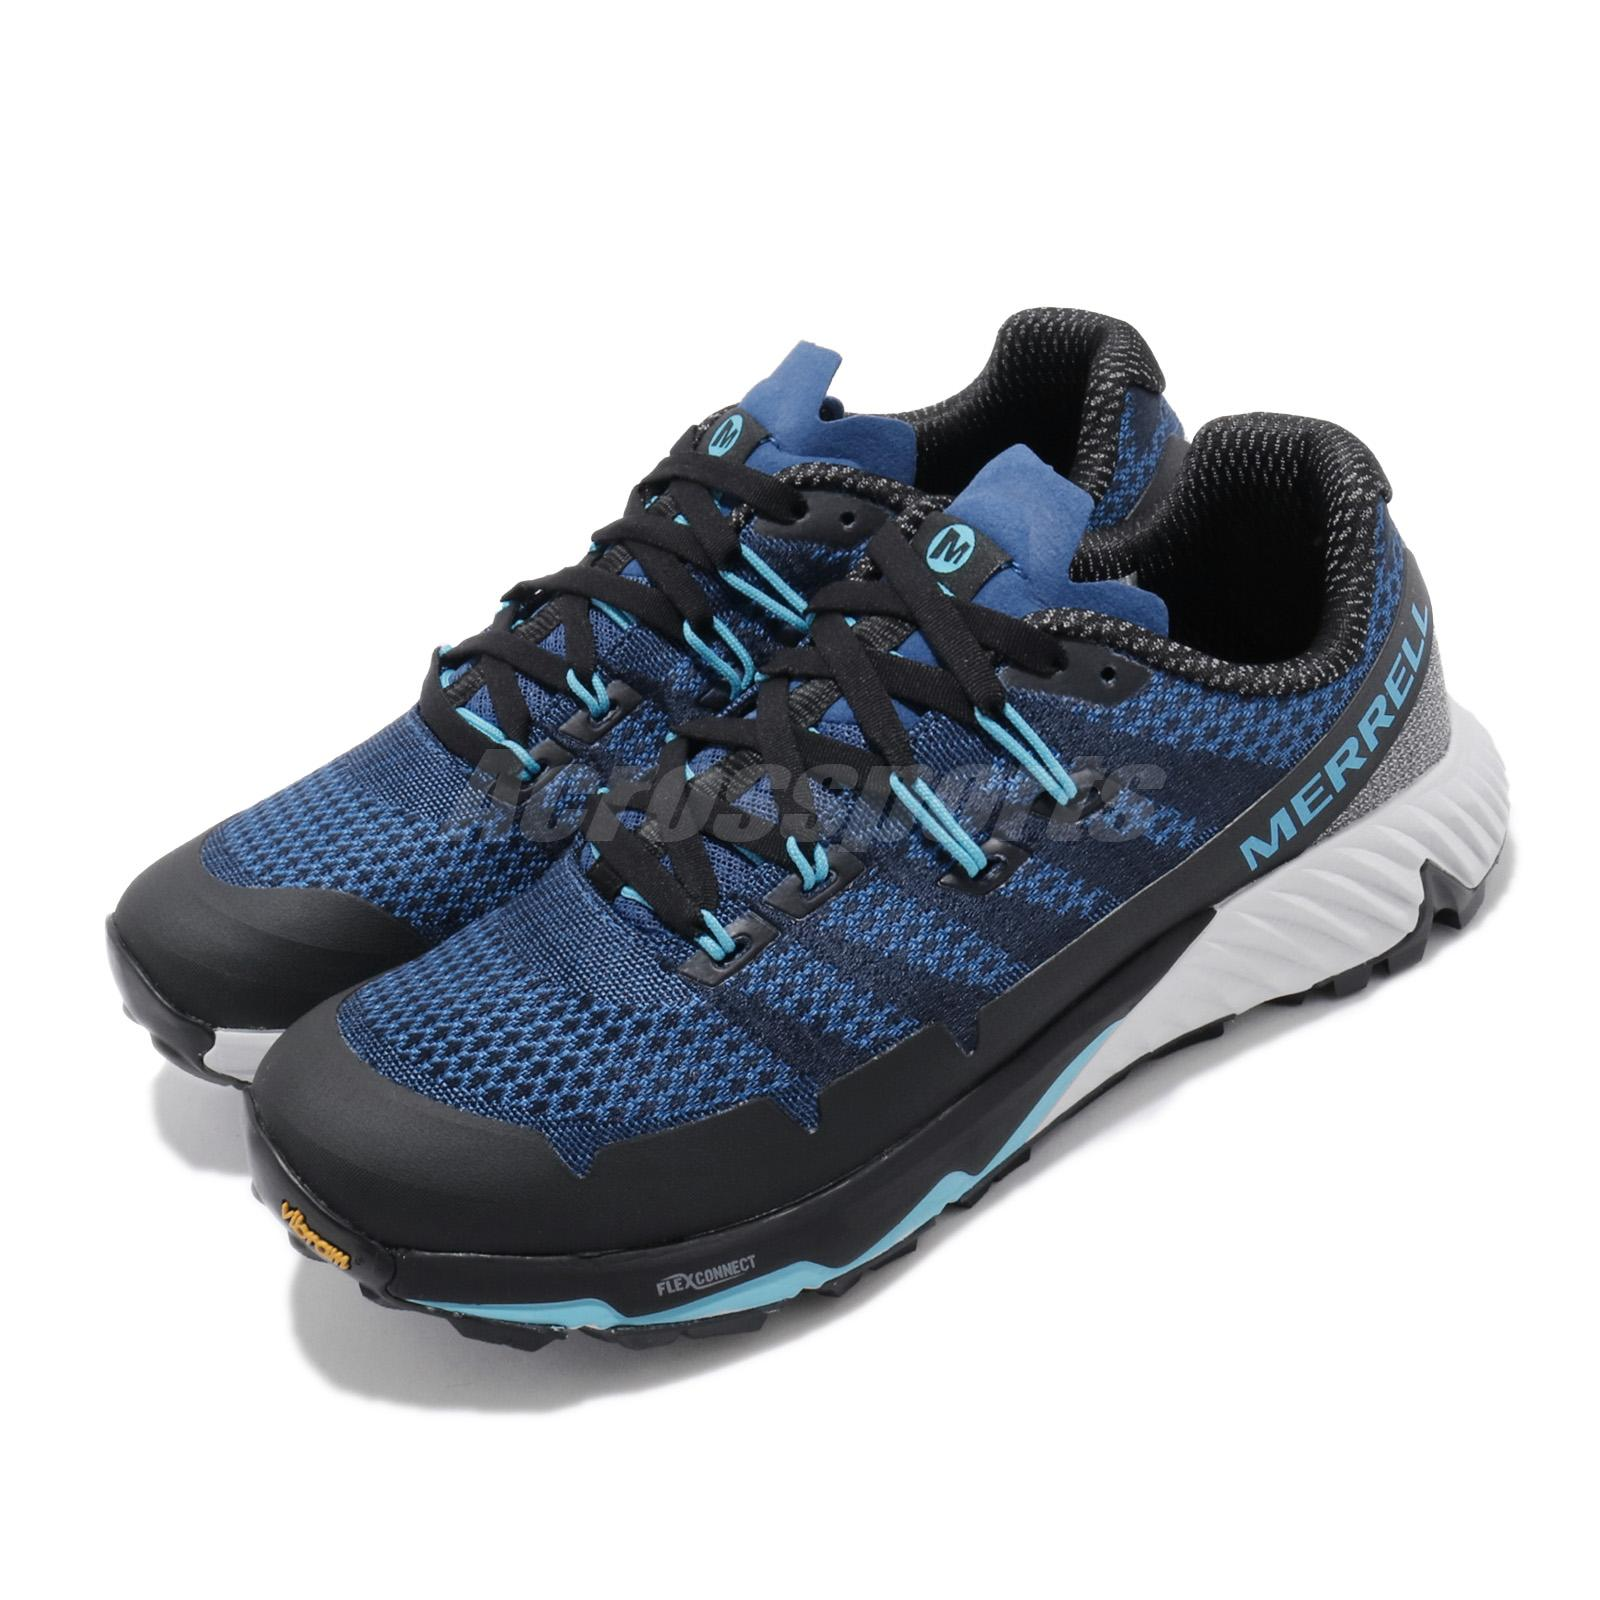 best value convenience goods the cheapest Details about Merrell Agility Peak Flex 3 Cobalt Blue Mens Trail Running  Shoes ML16607